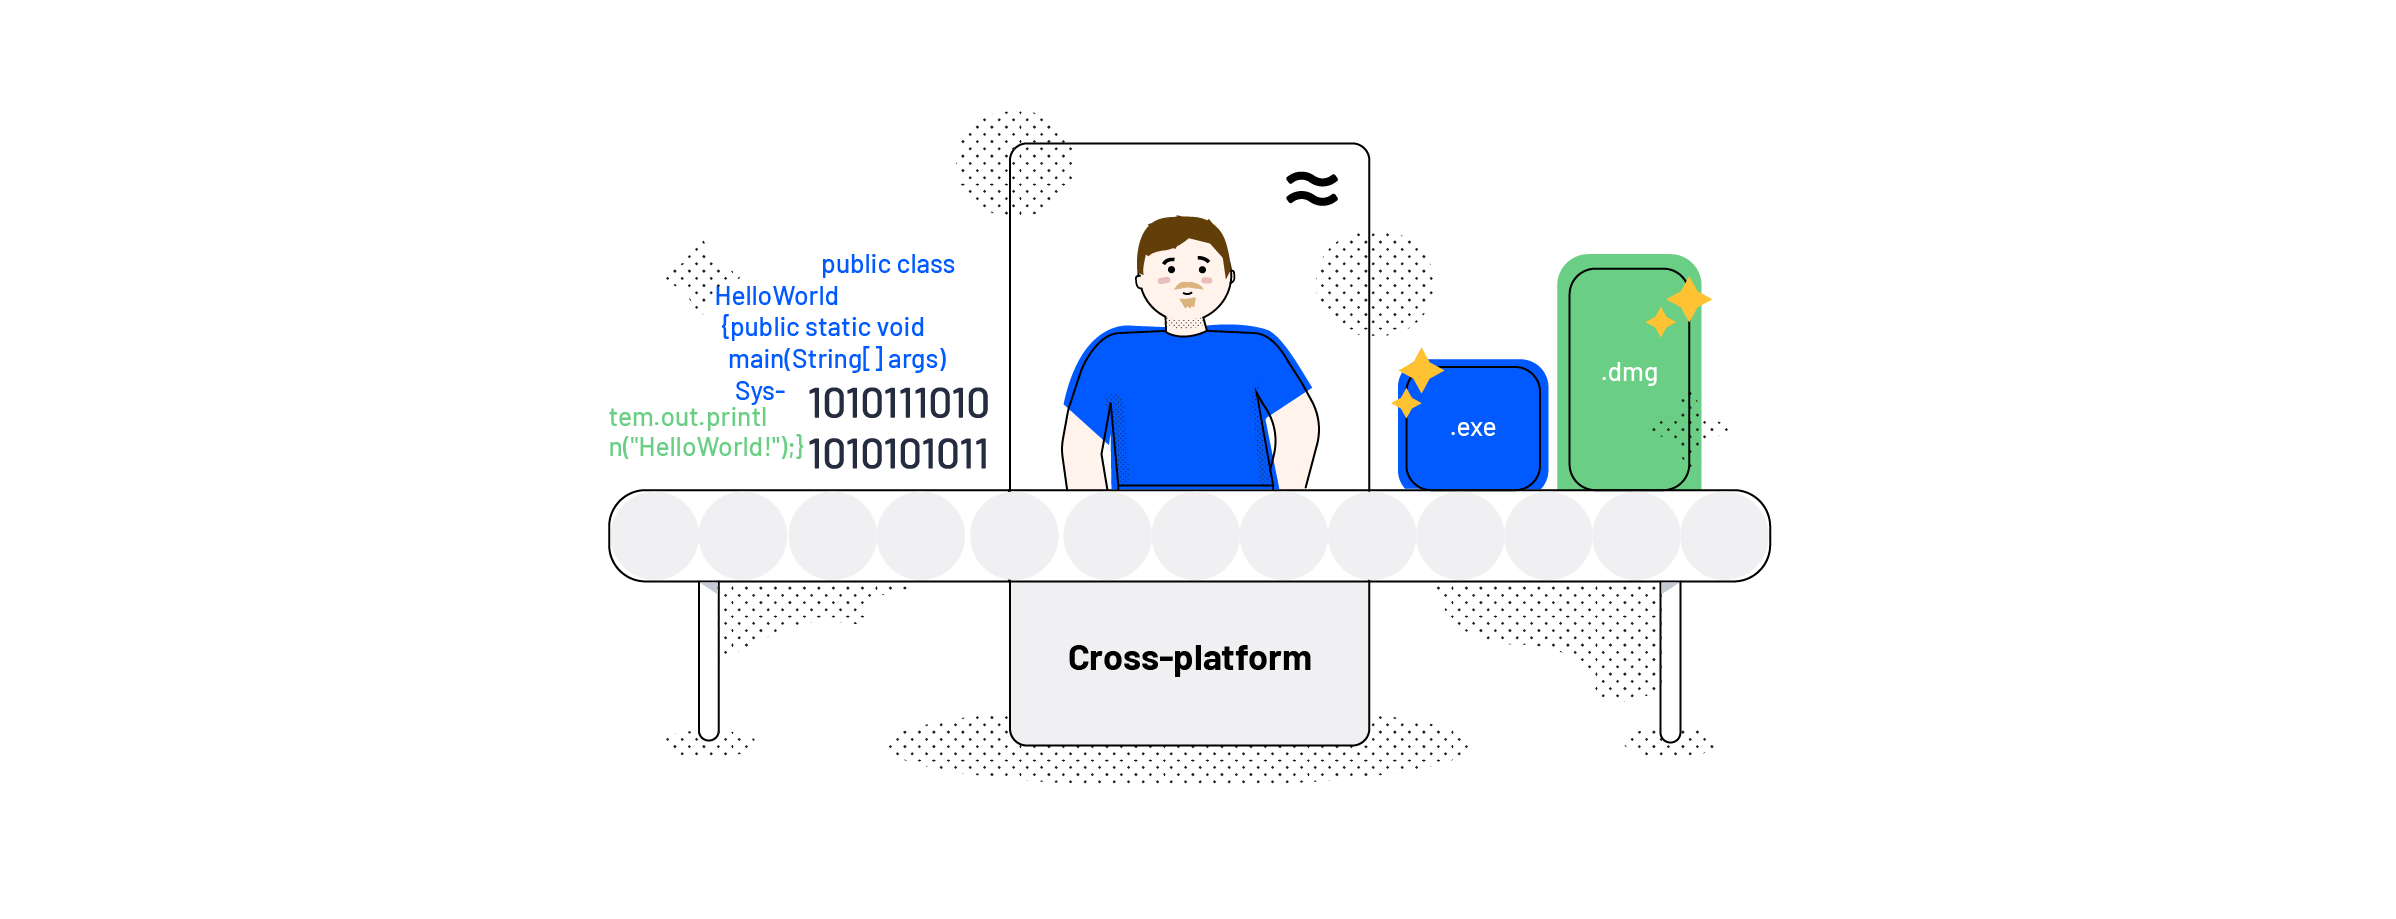 A man from the infrastructure team standing in front of a conveyor belt packing code into cross-platform packages